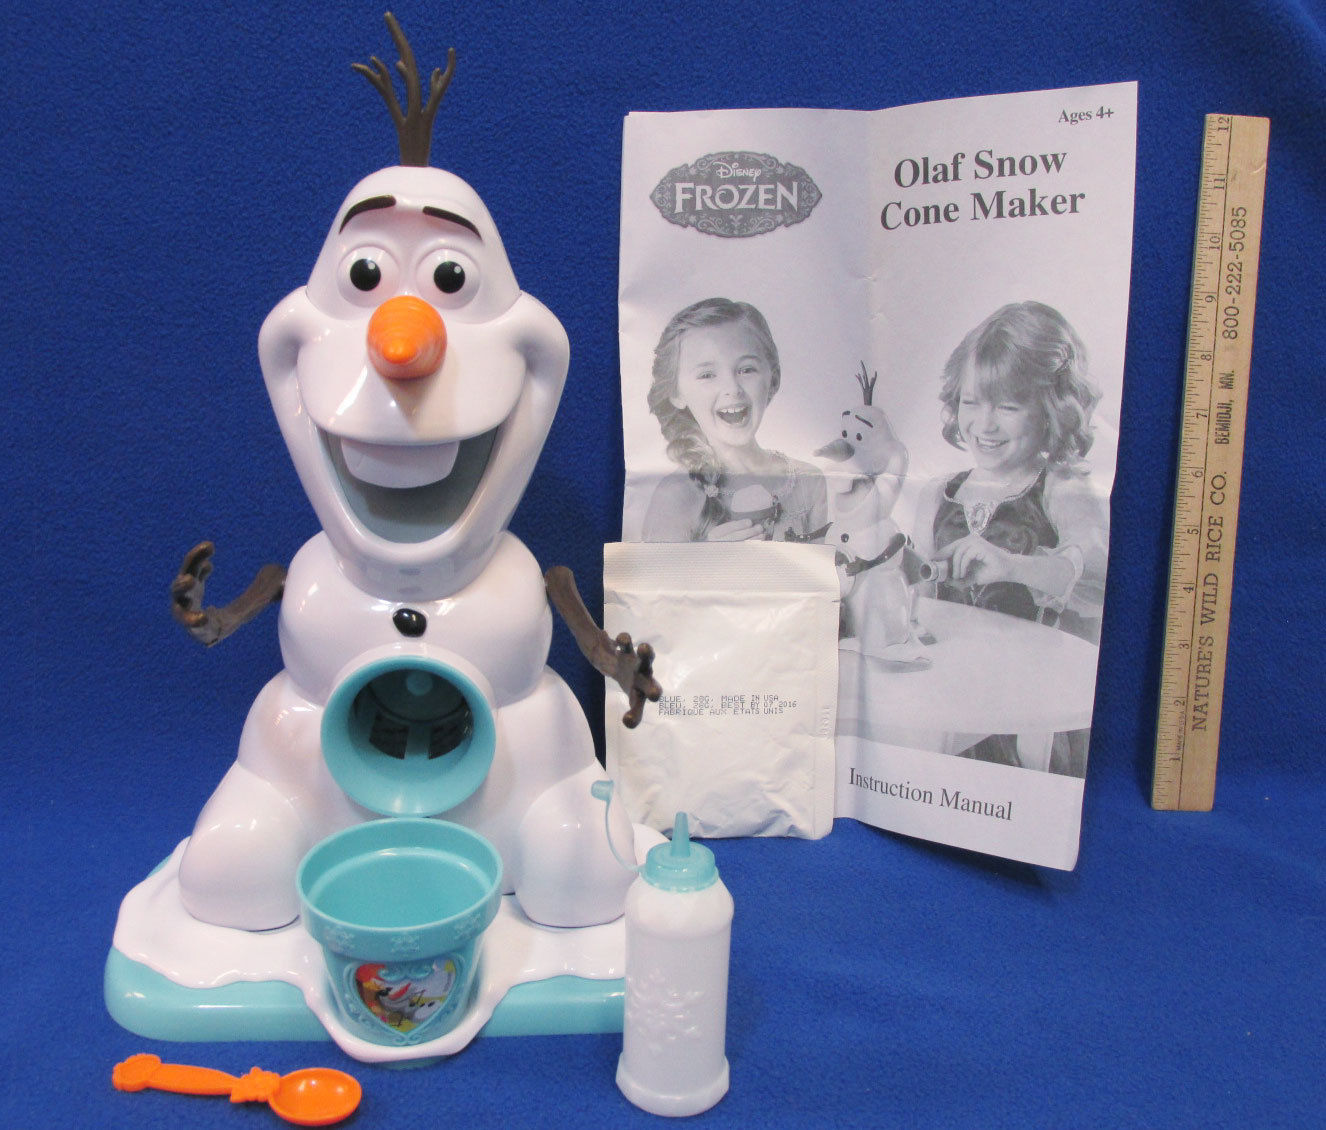 Disney Frozen Olaf Snow Cone Maker Plastic Syrup Bottle Cup Spoon & A Mix Lot 5 - $15.98